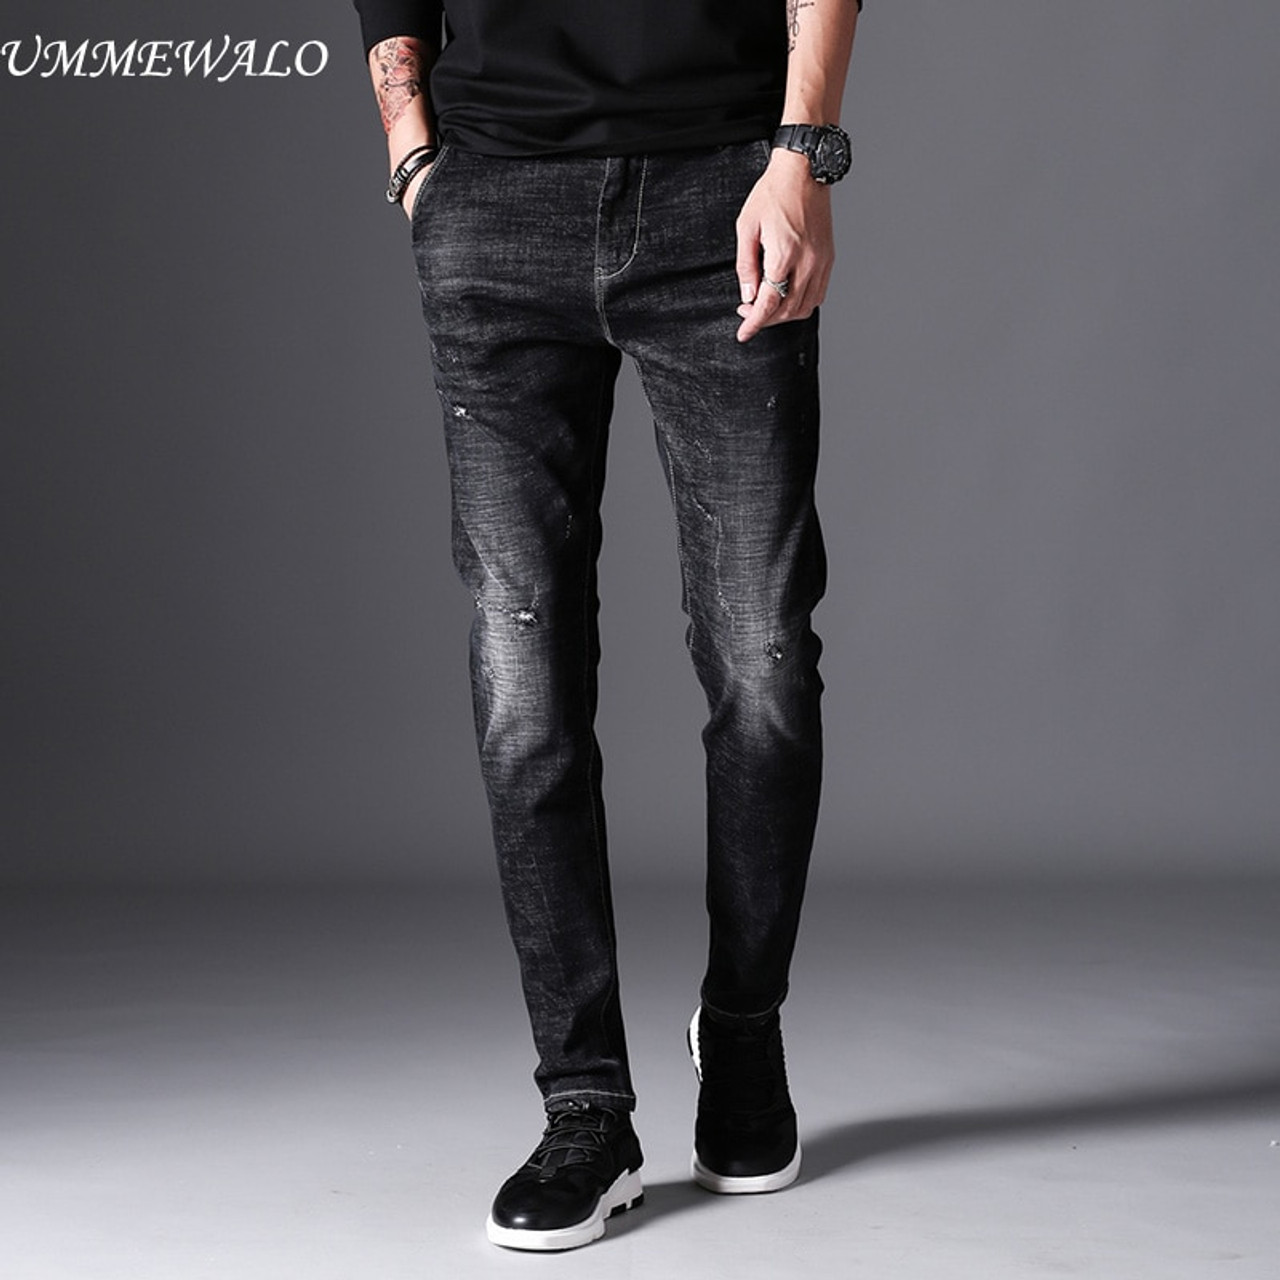 jean for man